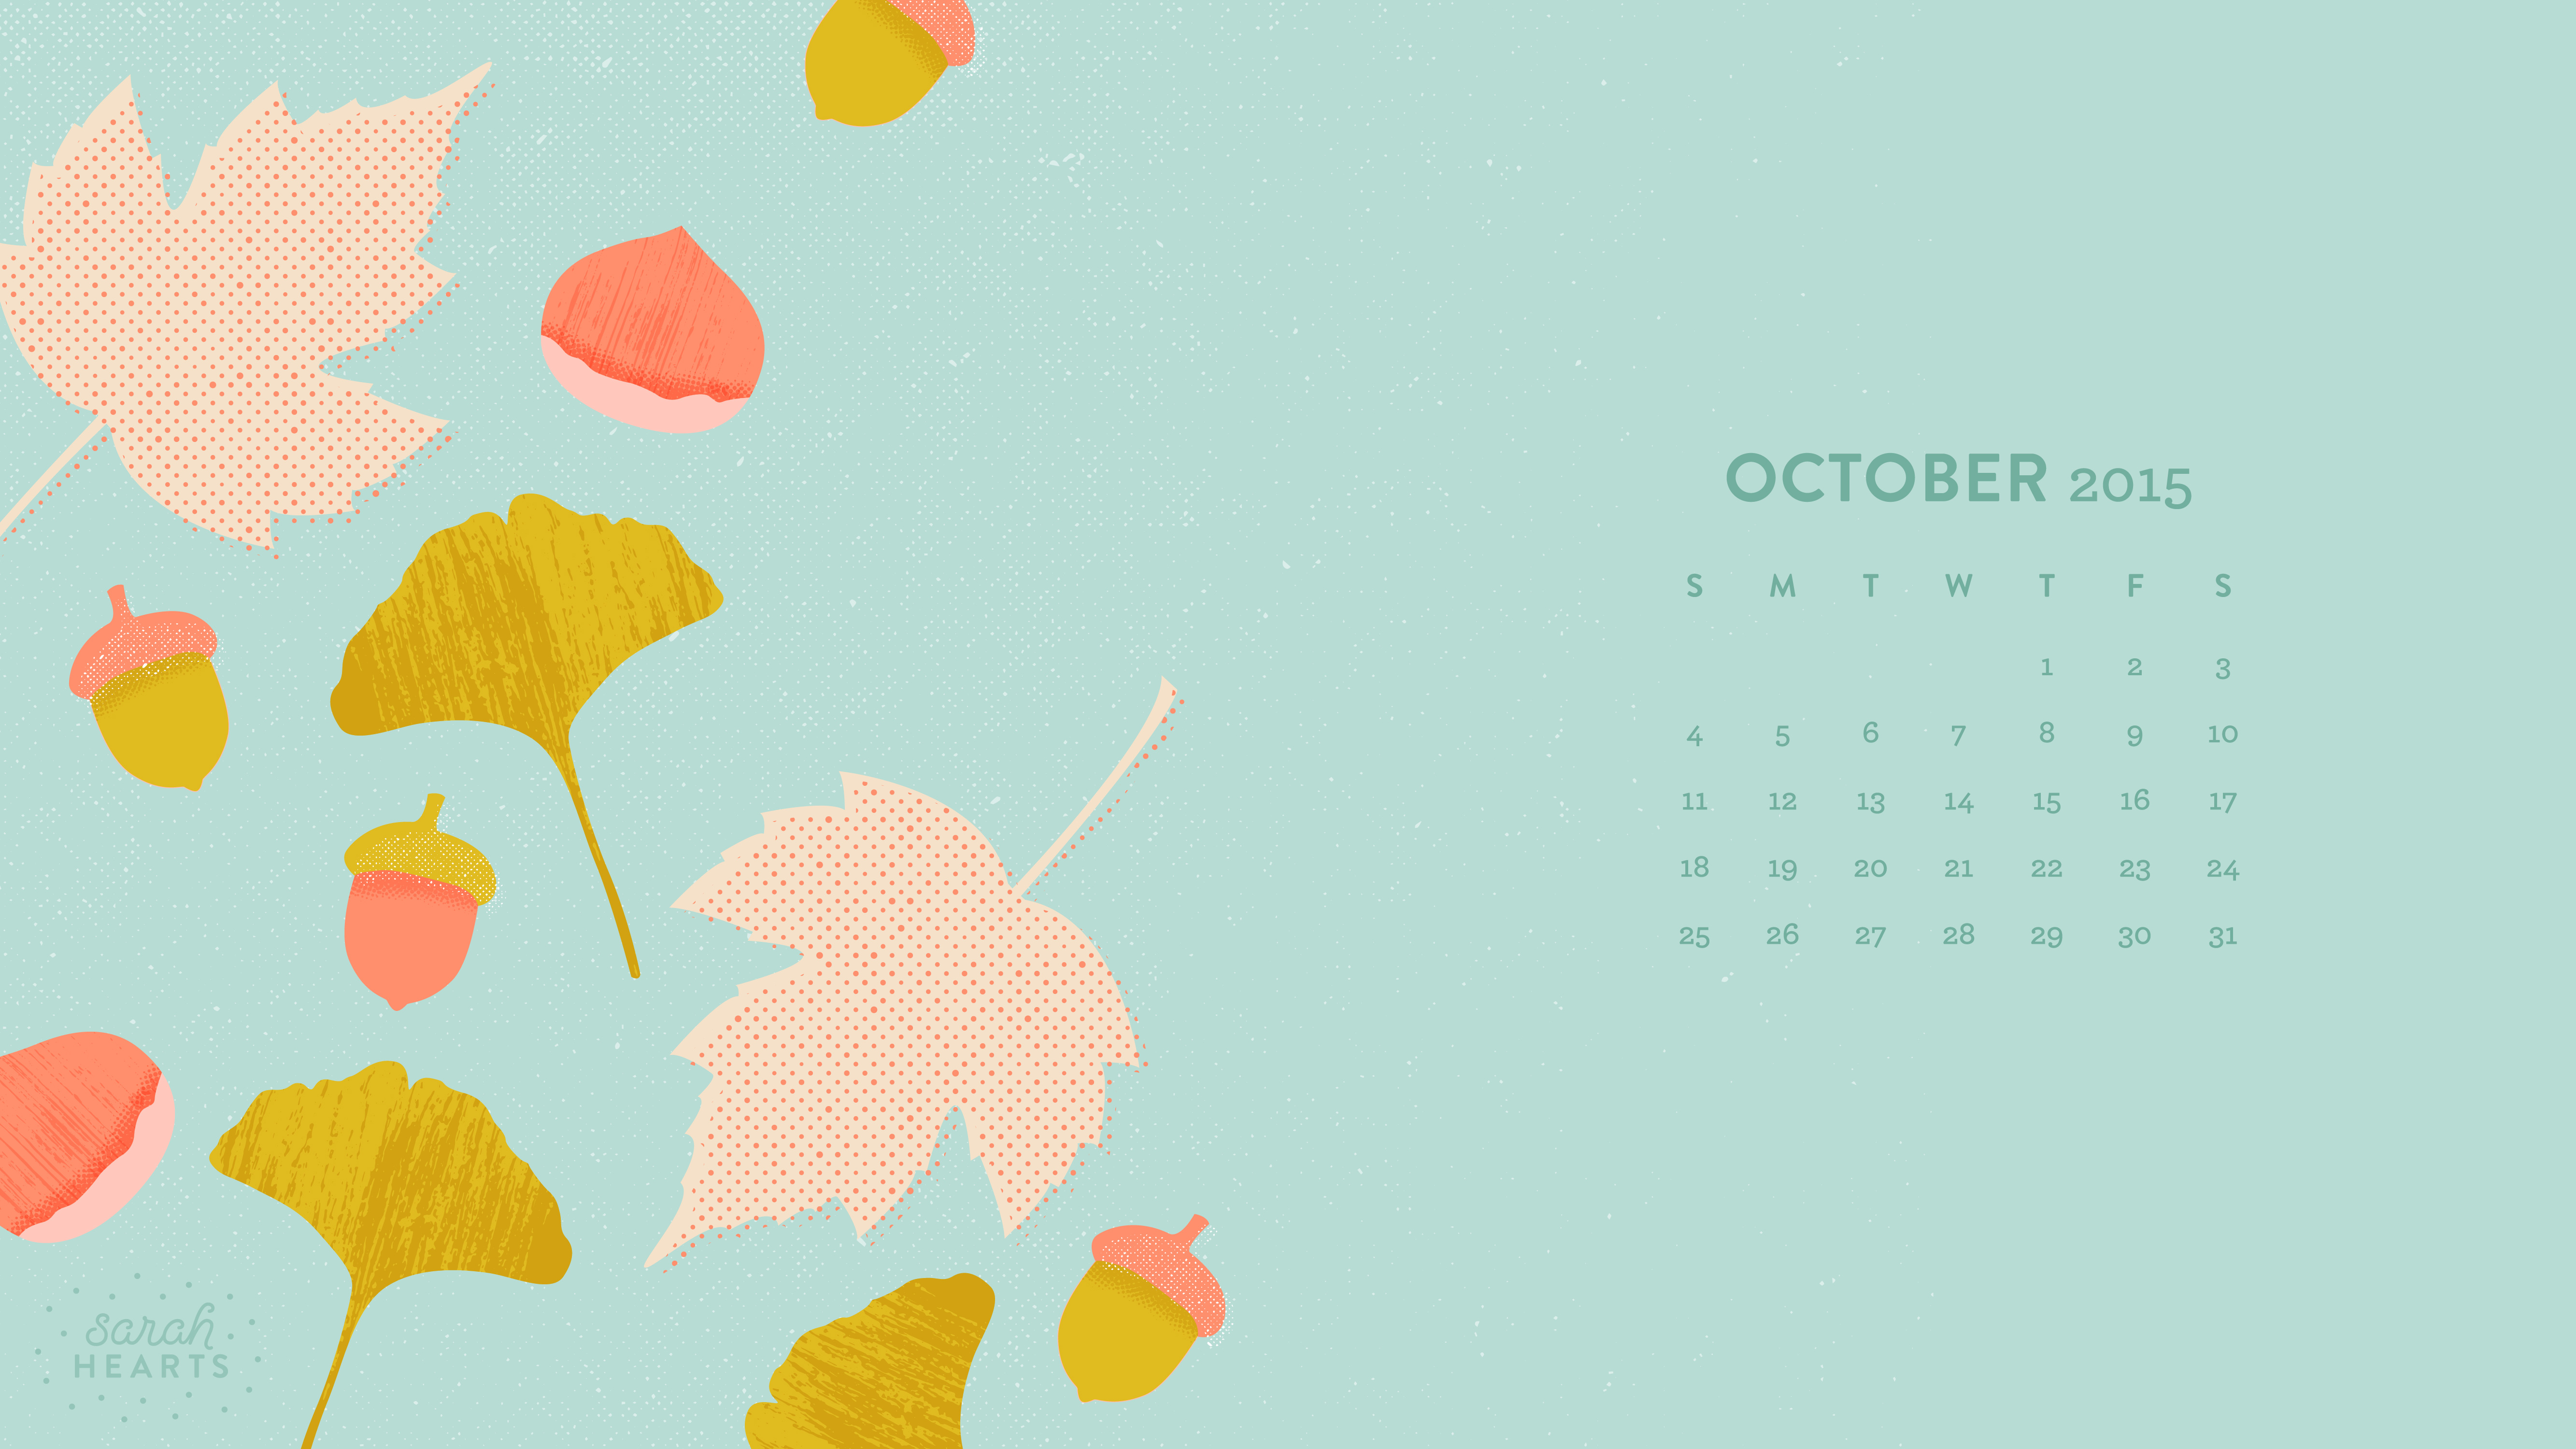 October 2015 Calendar Wallpaper   Sarah Hearts 5333x3000